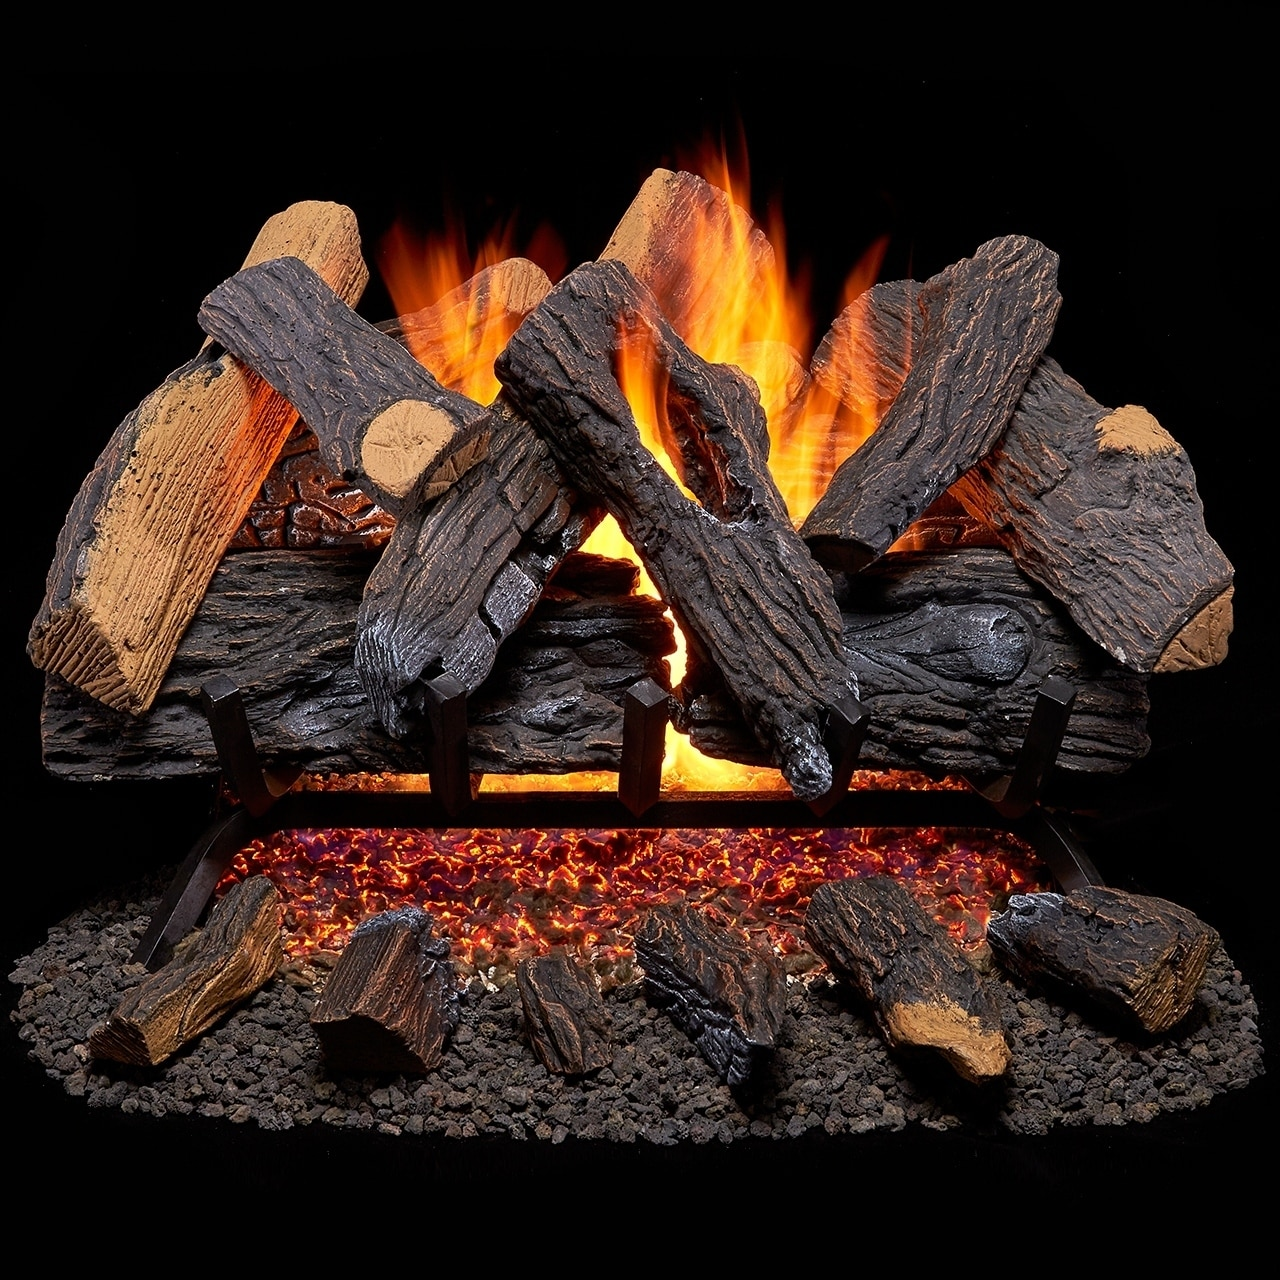 Duluth Forge Vented Natural Gas Fireplace Log Set - 24 in...